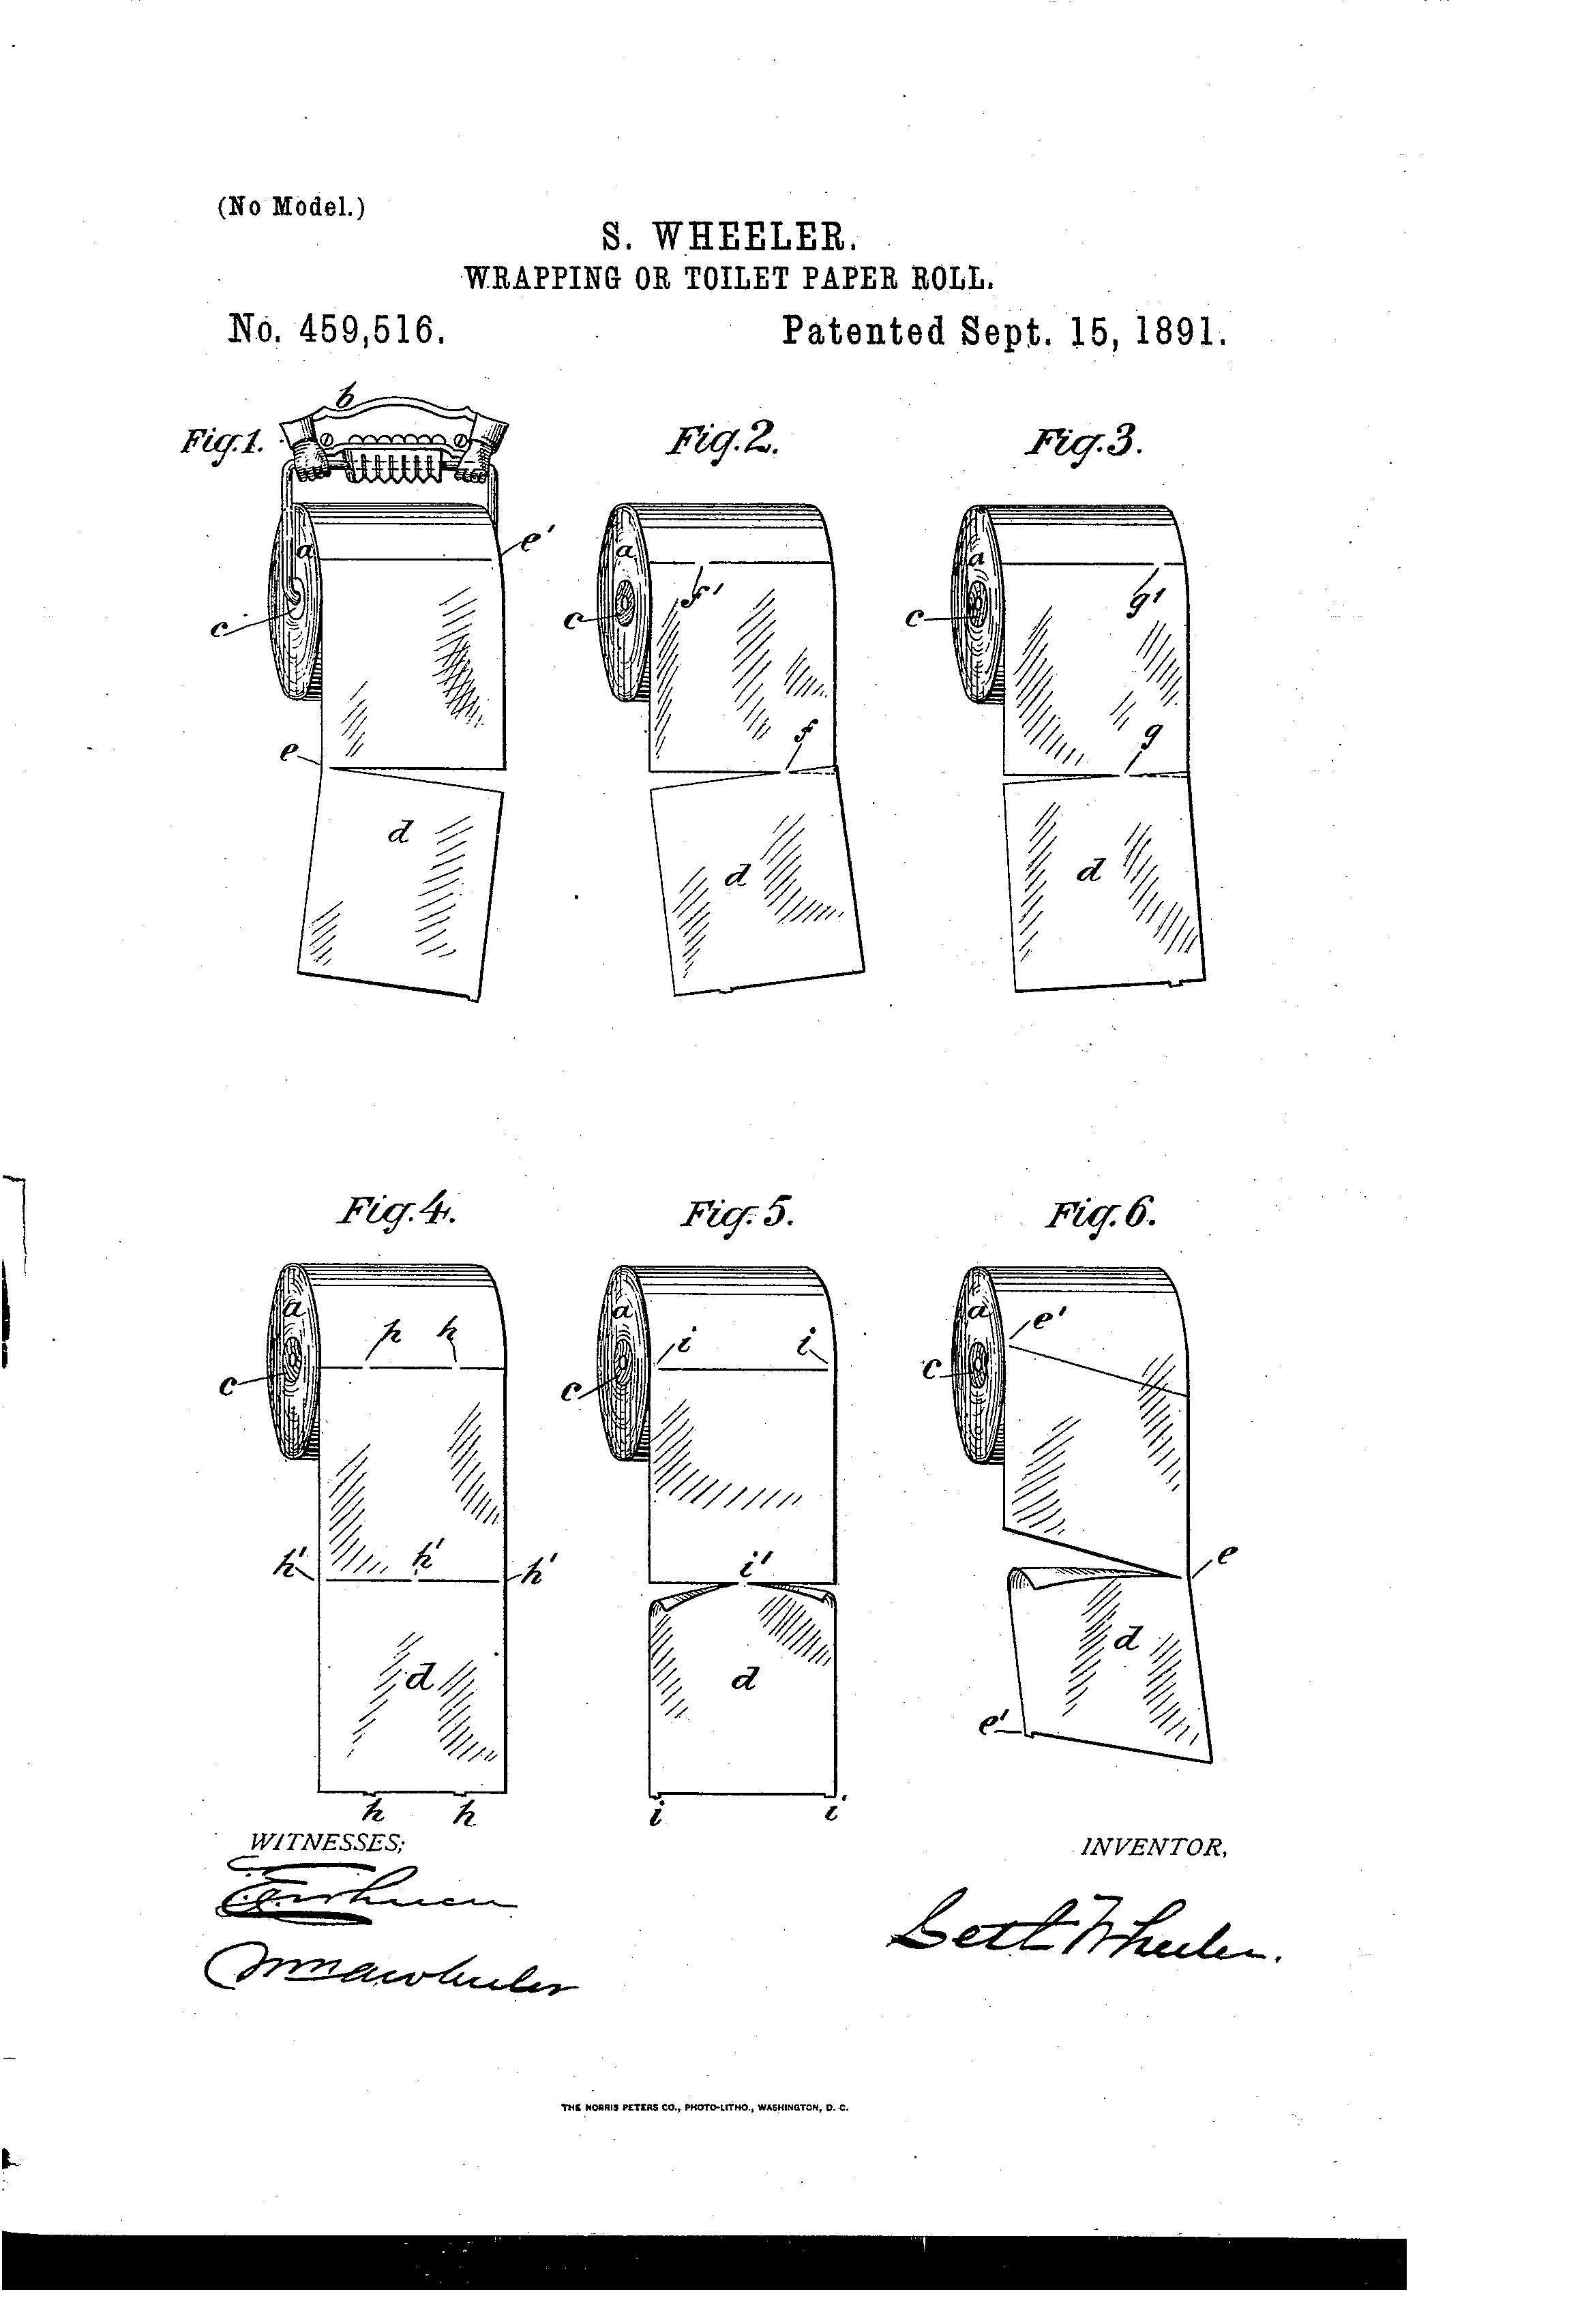 How to install a toilet paper roll, from U.S. Patent US 459,516 A by Seth Wheeler, 1891.